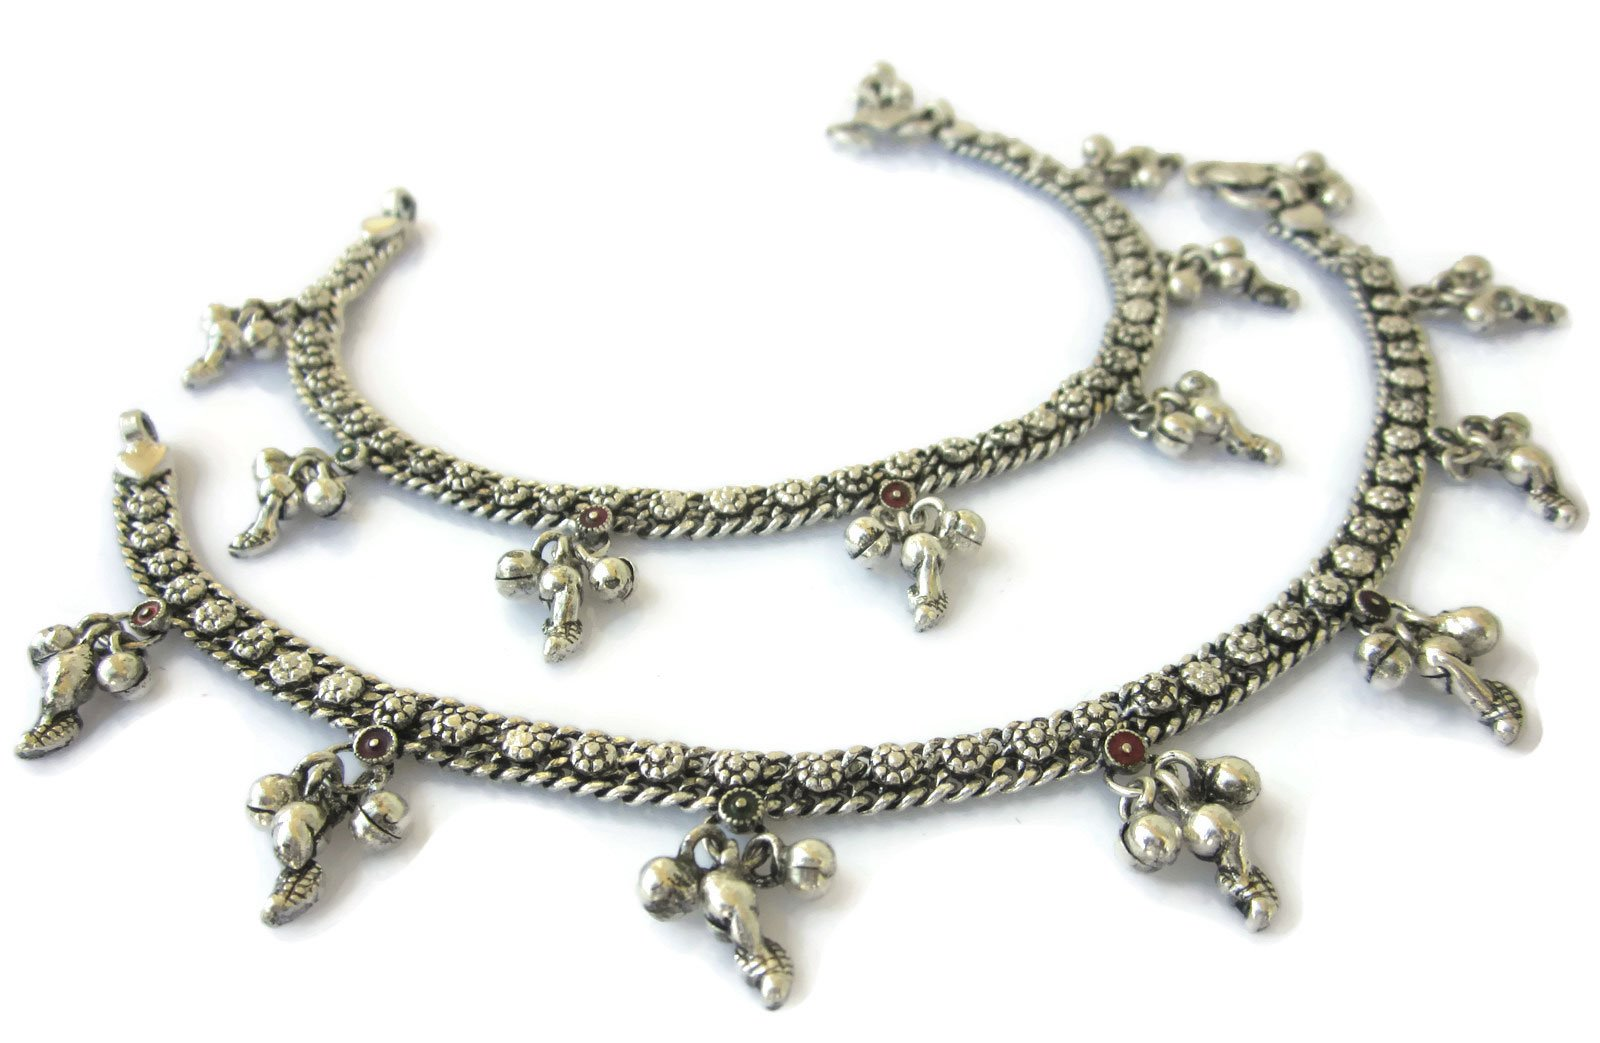 Metal Chain Paisley Charm Anklet Pair - Ankle Bracelet Boho Barefoot Sandals Beachy Jewelry - Indian Payal - Oxidized Silver Plated - Handmade Fine Soldered